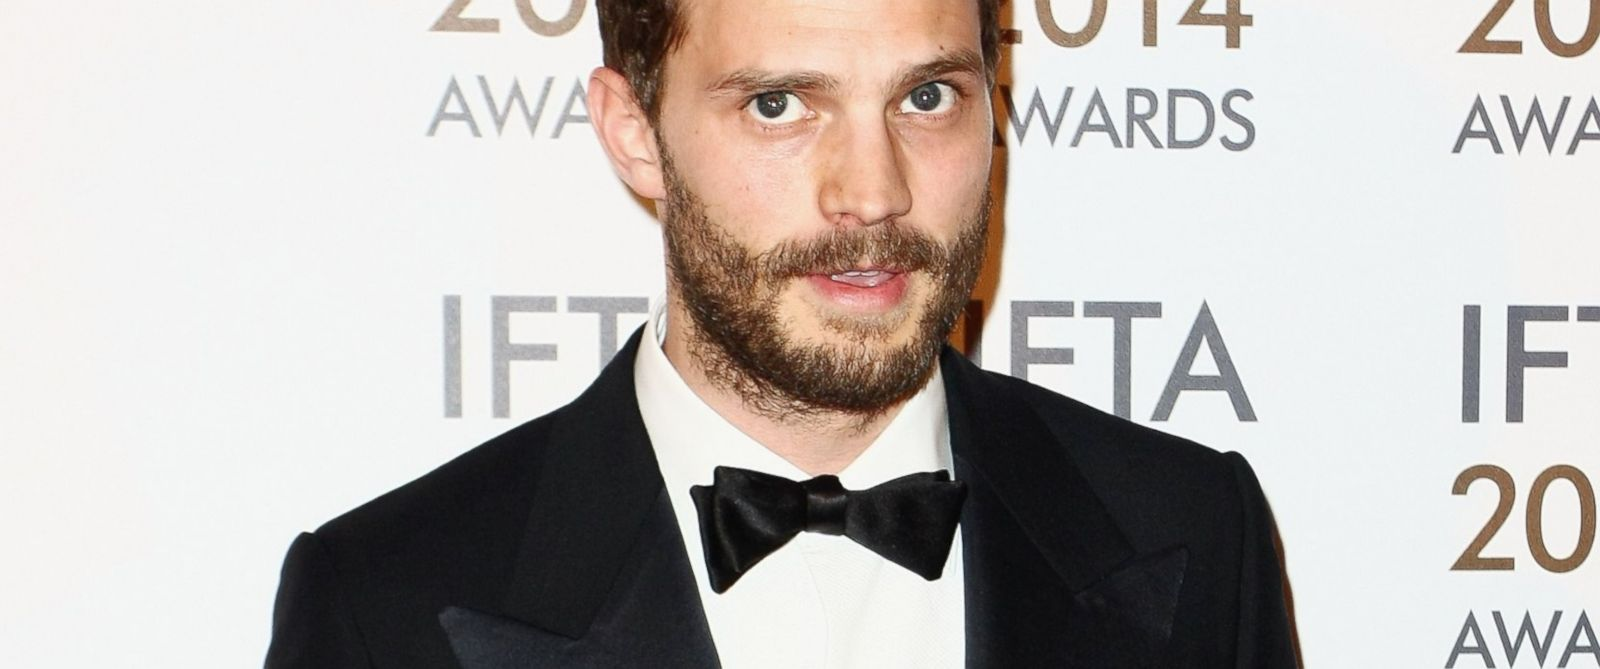 PHOTO: Jamie Dornan attends the Irish Film And Television Awards, April 5, 2014, in Dublin.